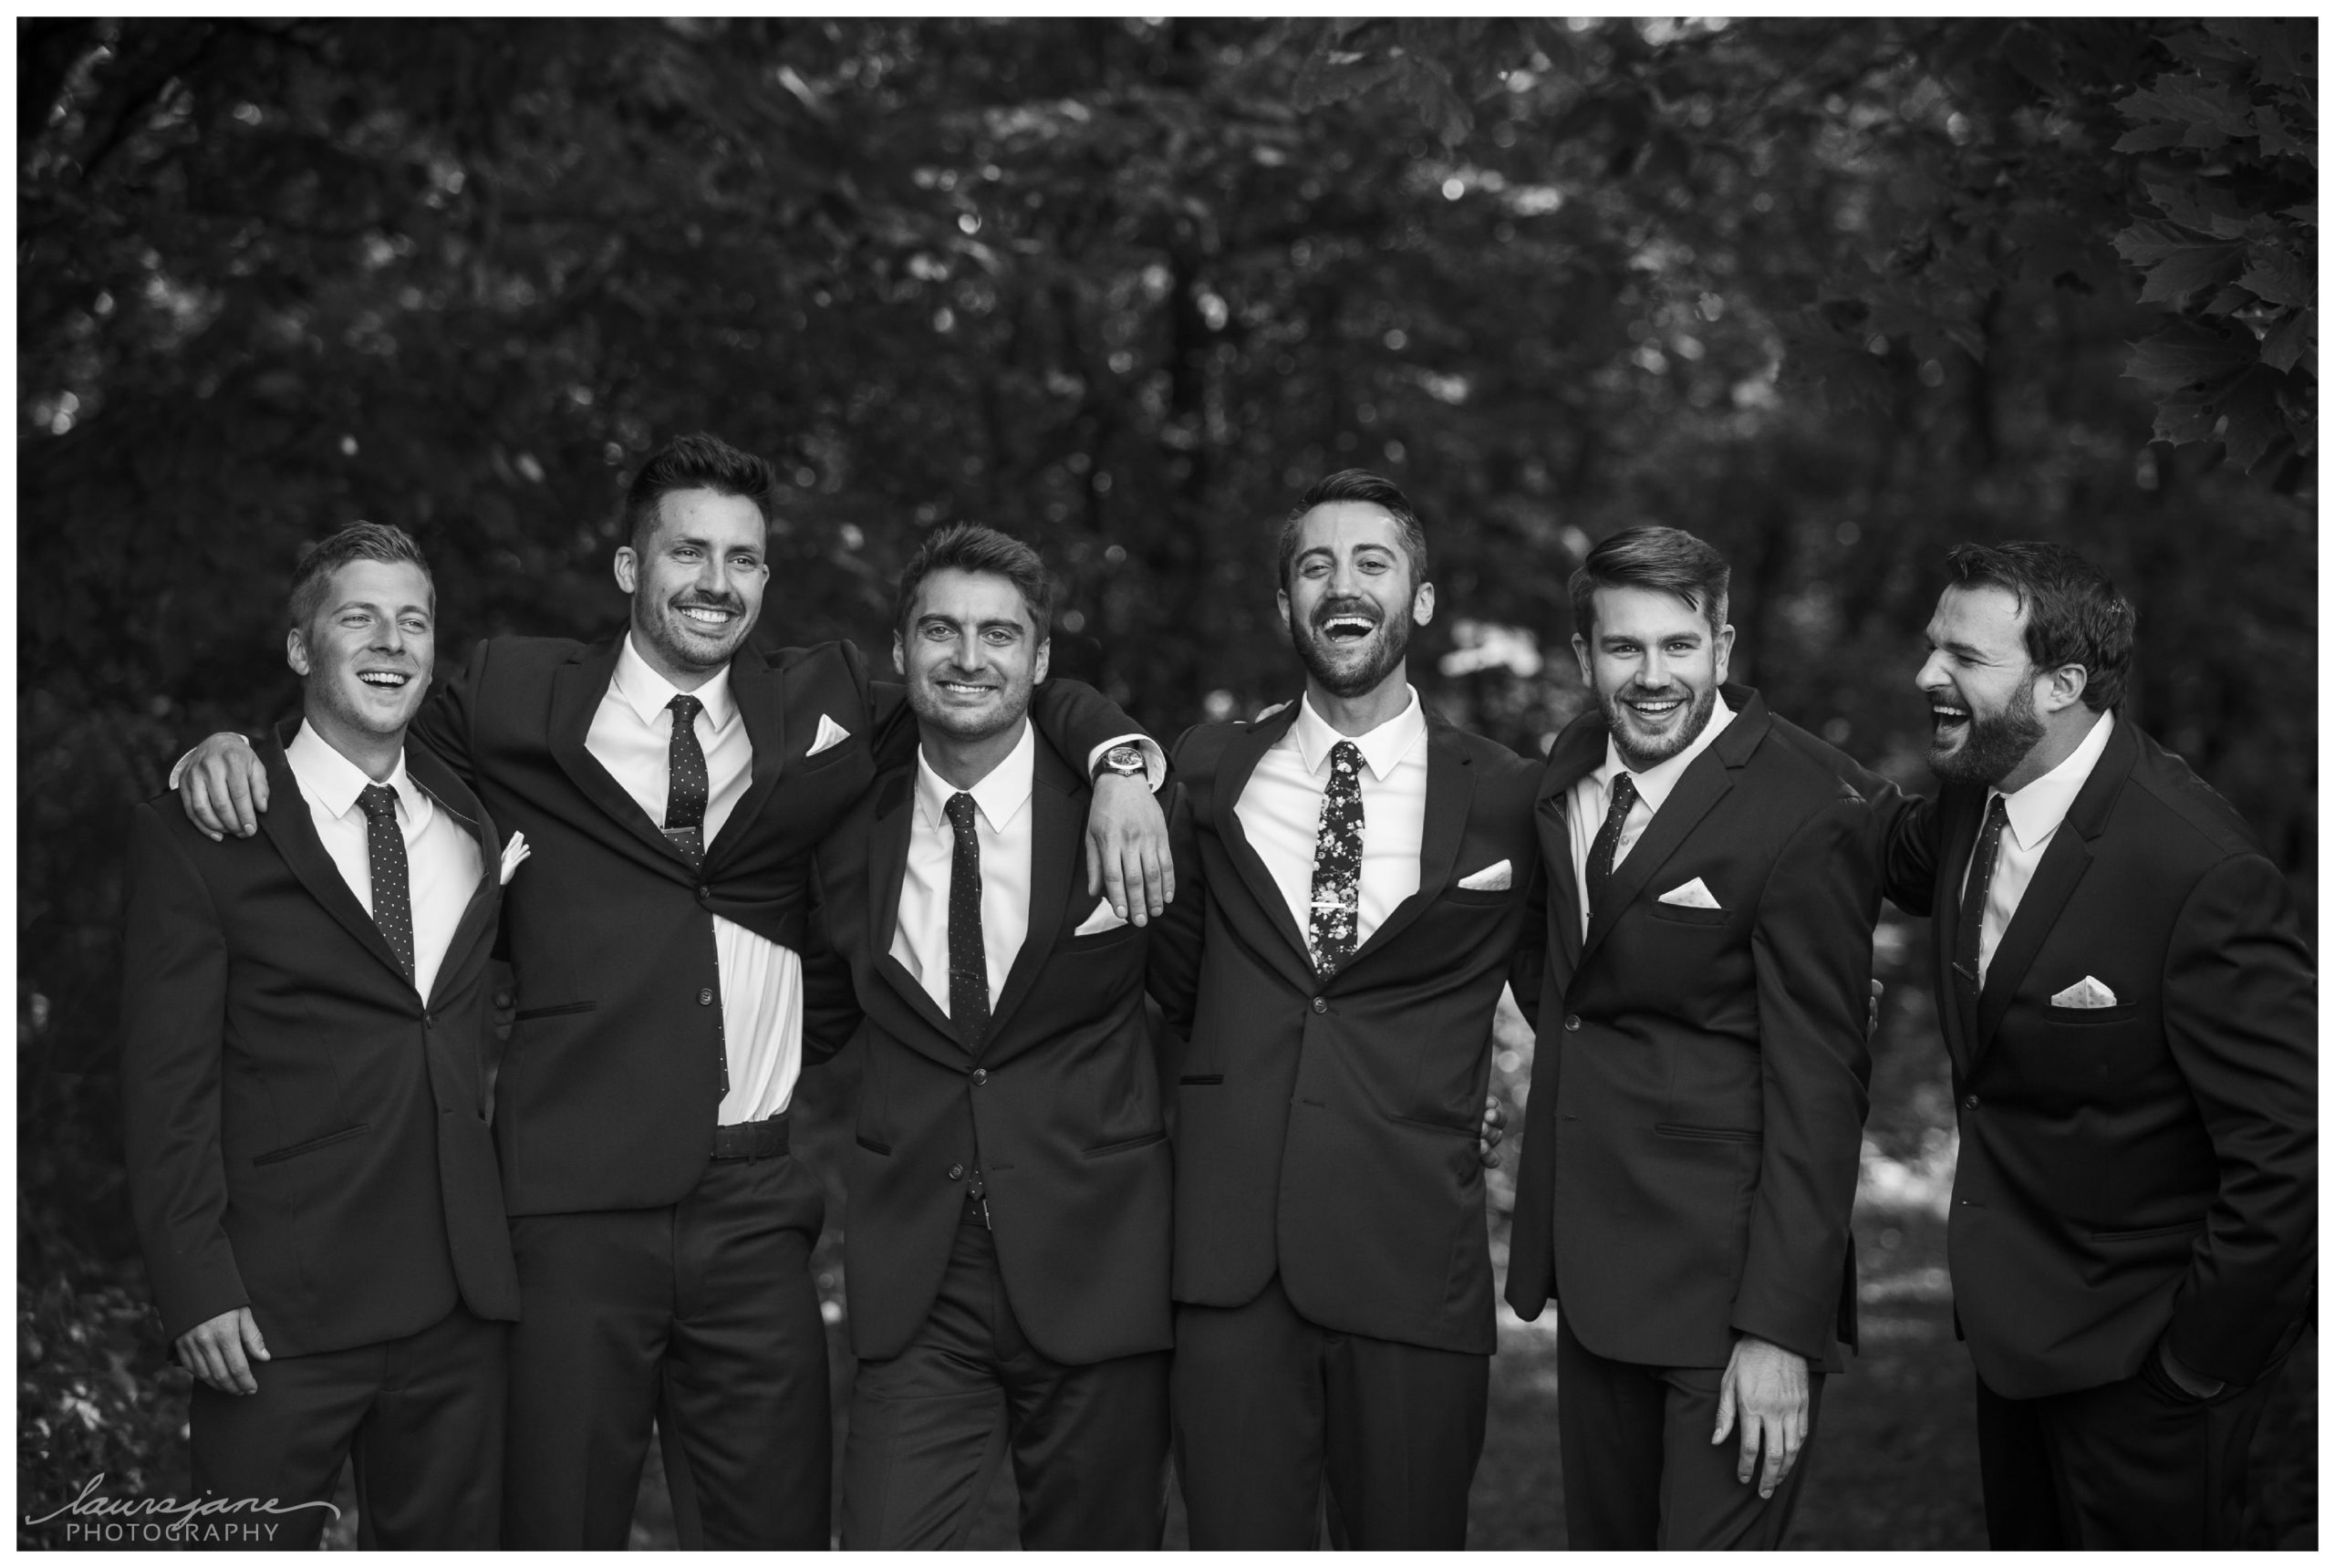 Groom & Groomsmen Portrait at Glacier Hills County Park